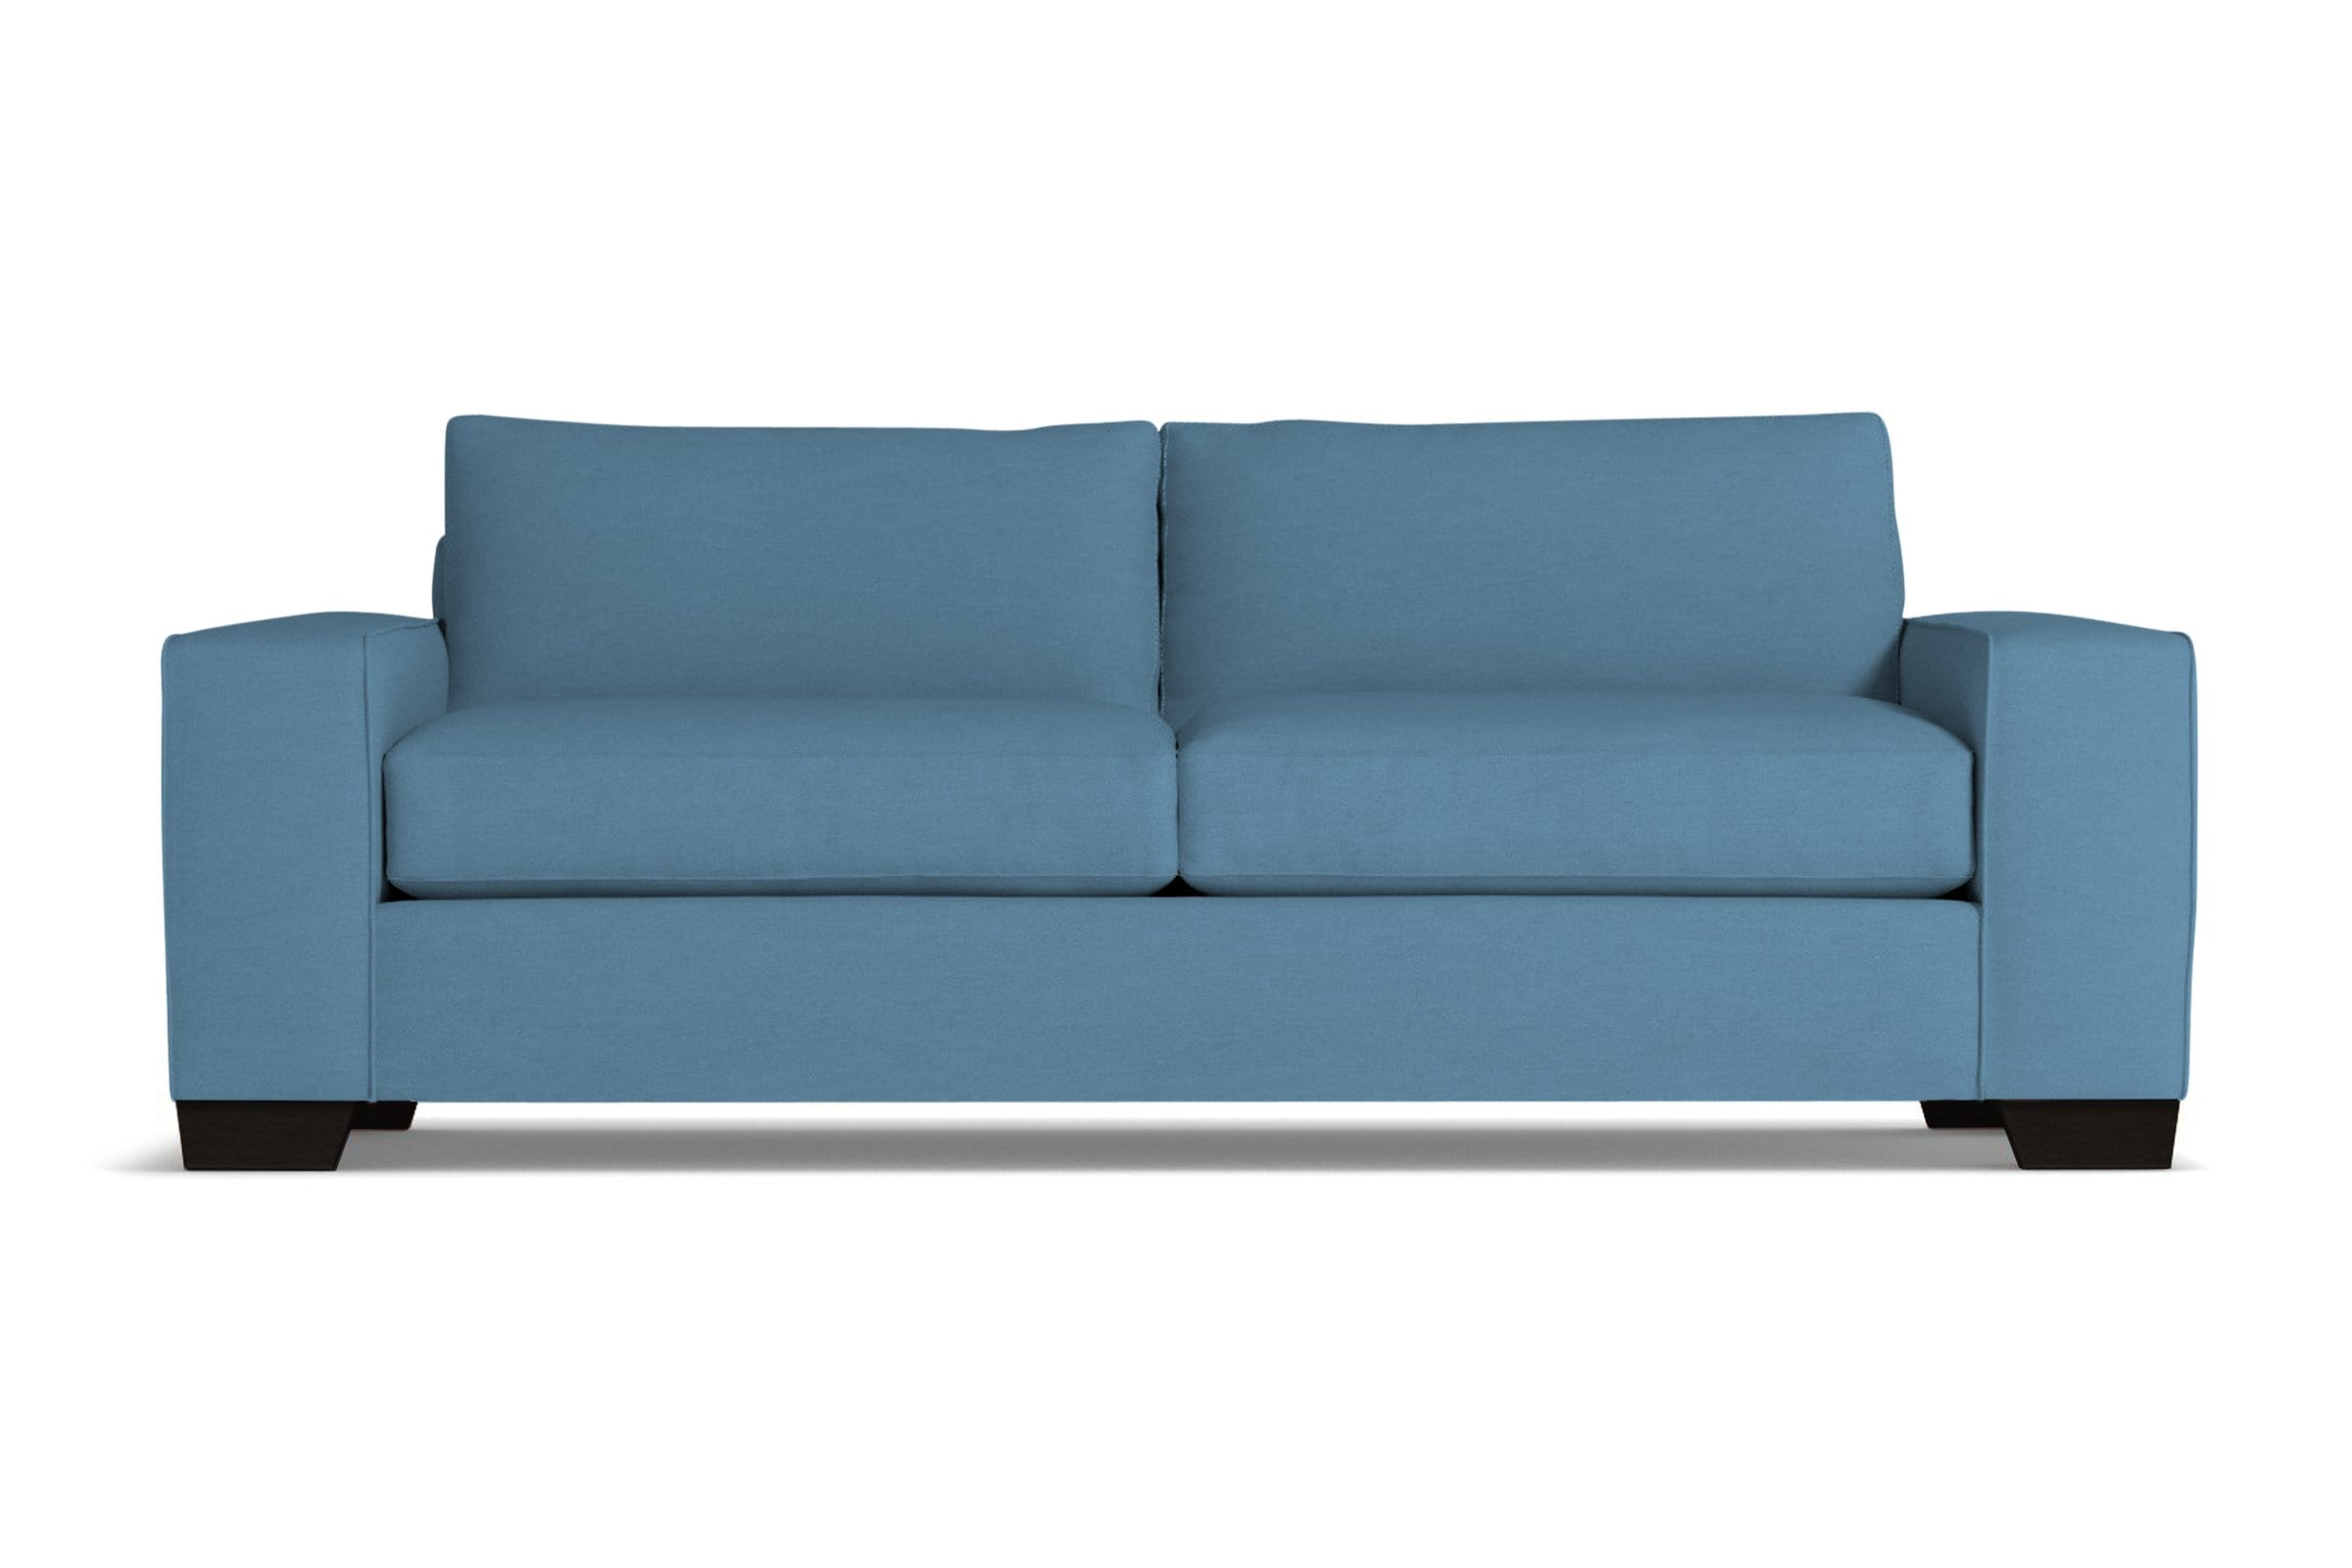 Melrose Sofa - Grey - Modern Couch Made in the USA - Sold by Apt2B